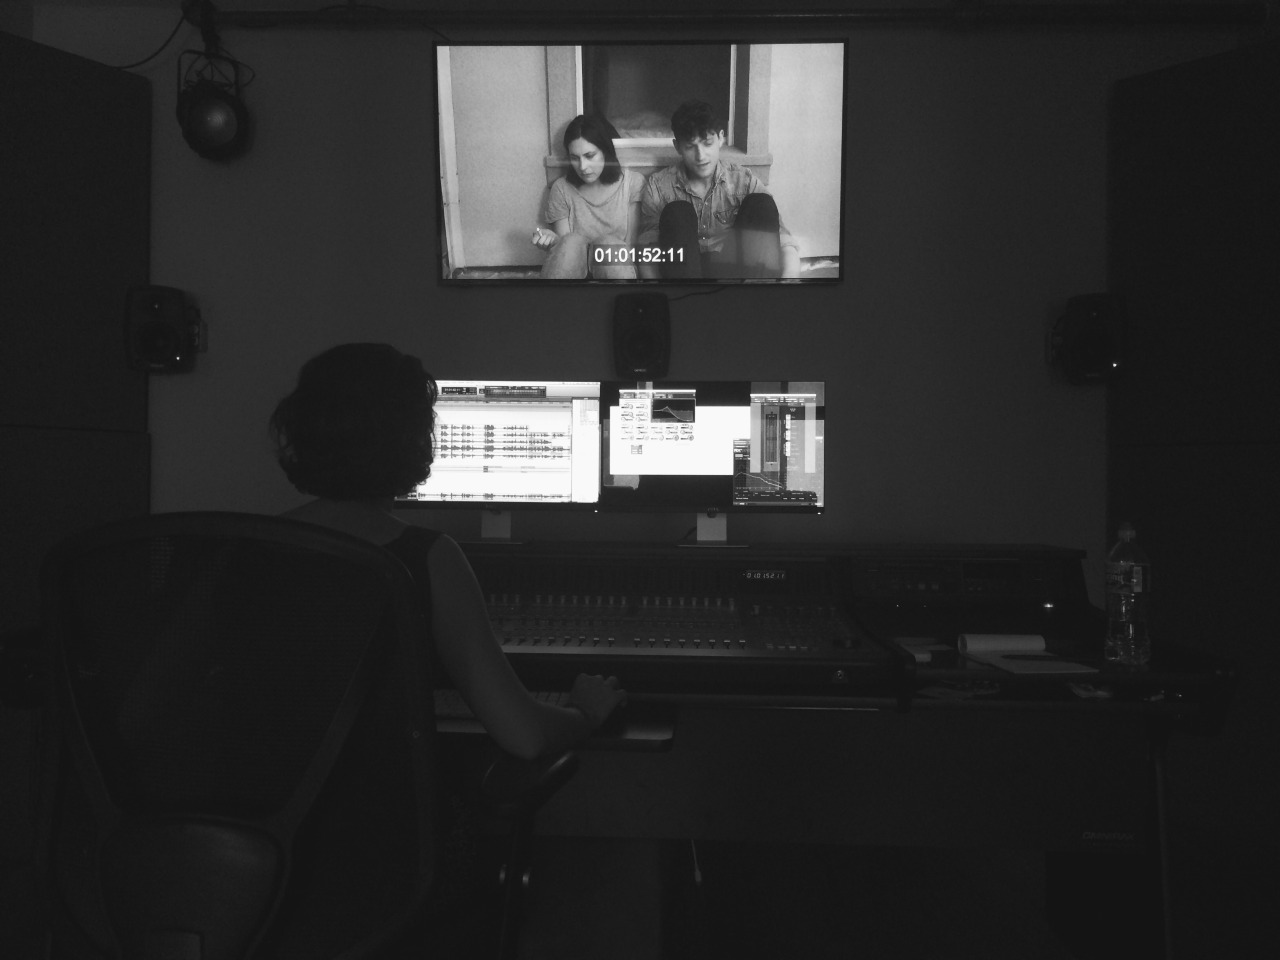 My film Maddie is finally complete and has been submitted to Sundance & SXSW! It has been quite the journey… Huge thanks to my talented cast and crew and everyone that helped along the way. I can't wait to share it with you on the big screen. Much love✌   Photo caption: Working on the final sound mix with our sound designer, Isilay